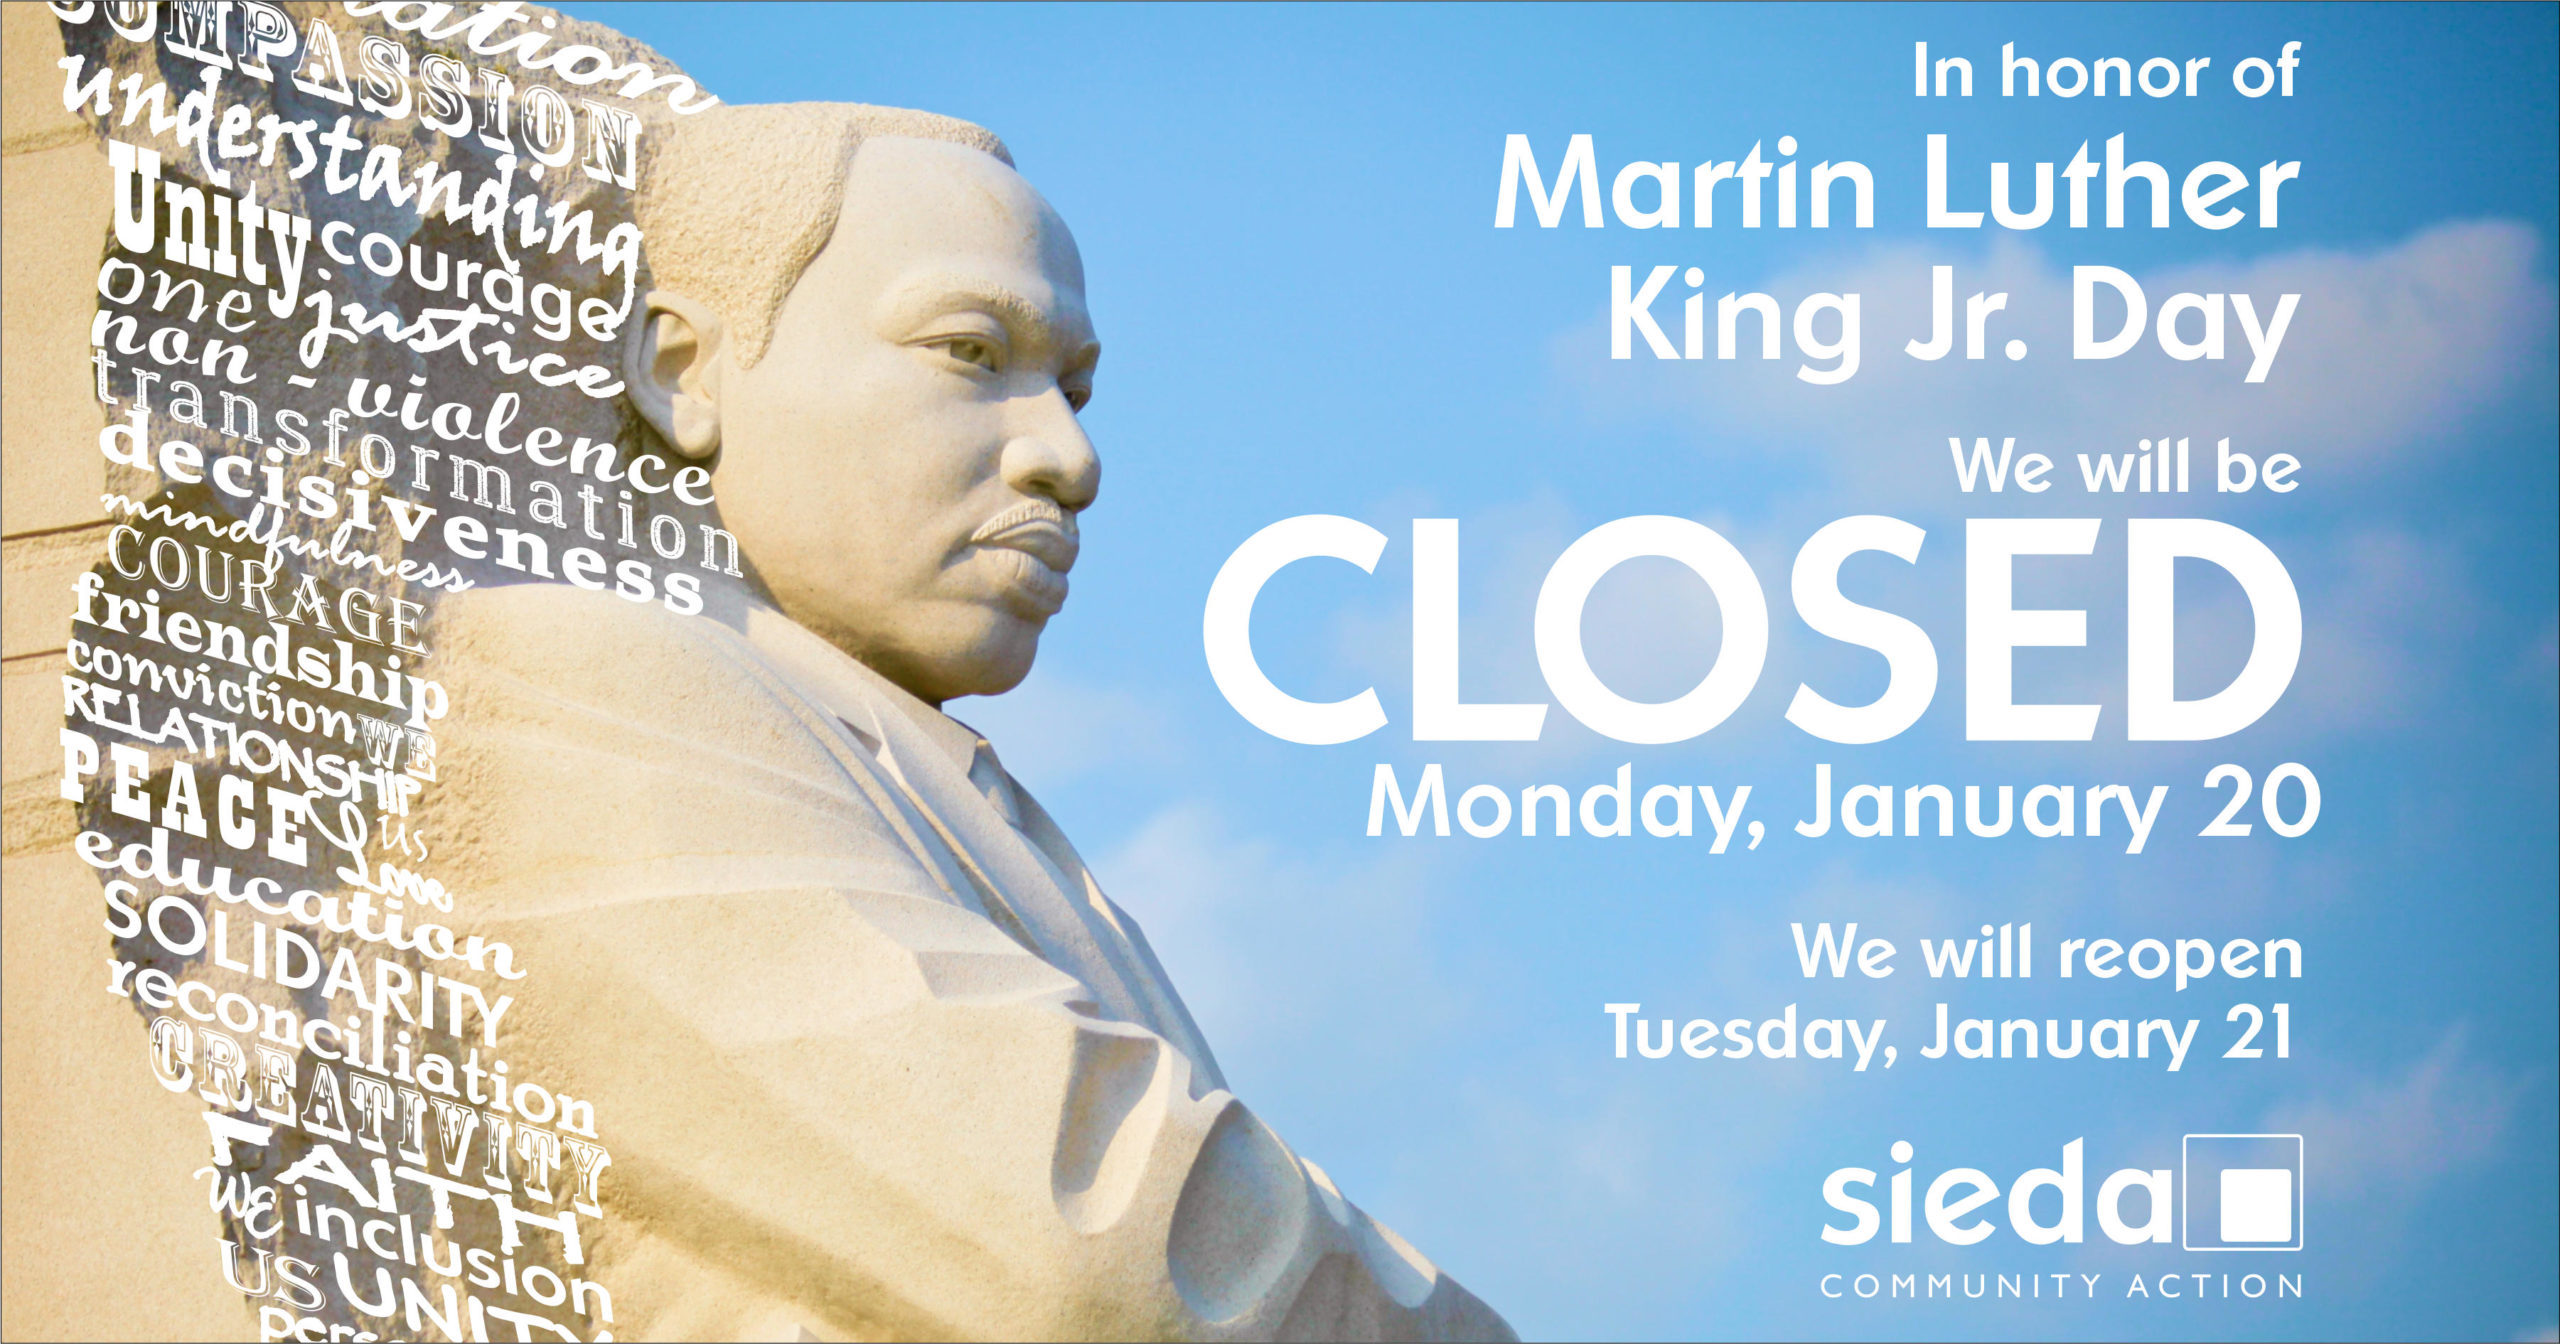 Sieda Centers Closed For Martin Luther King Jr Day Sieda Community Action